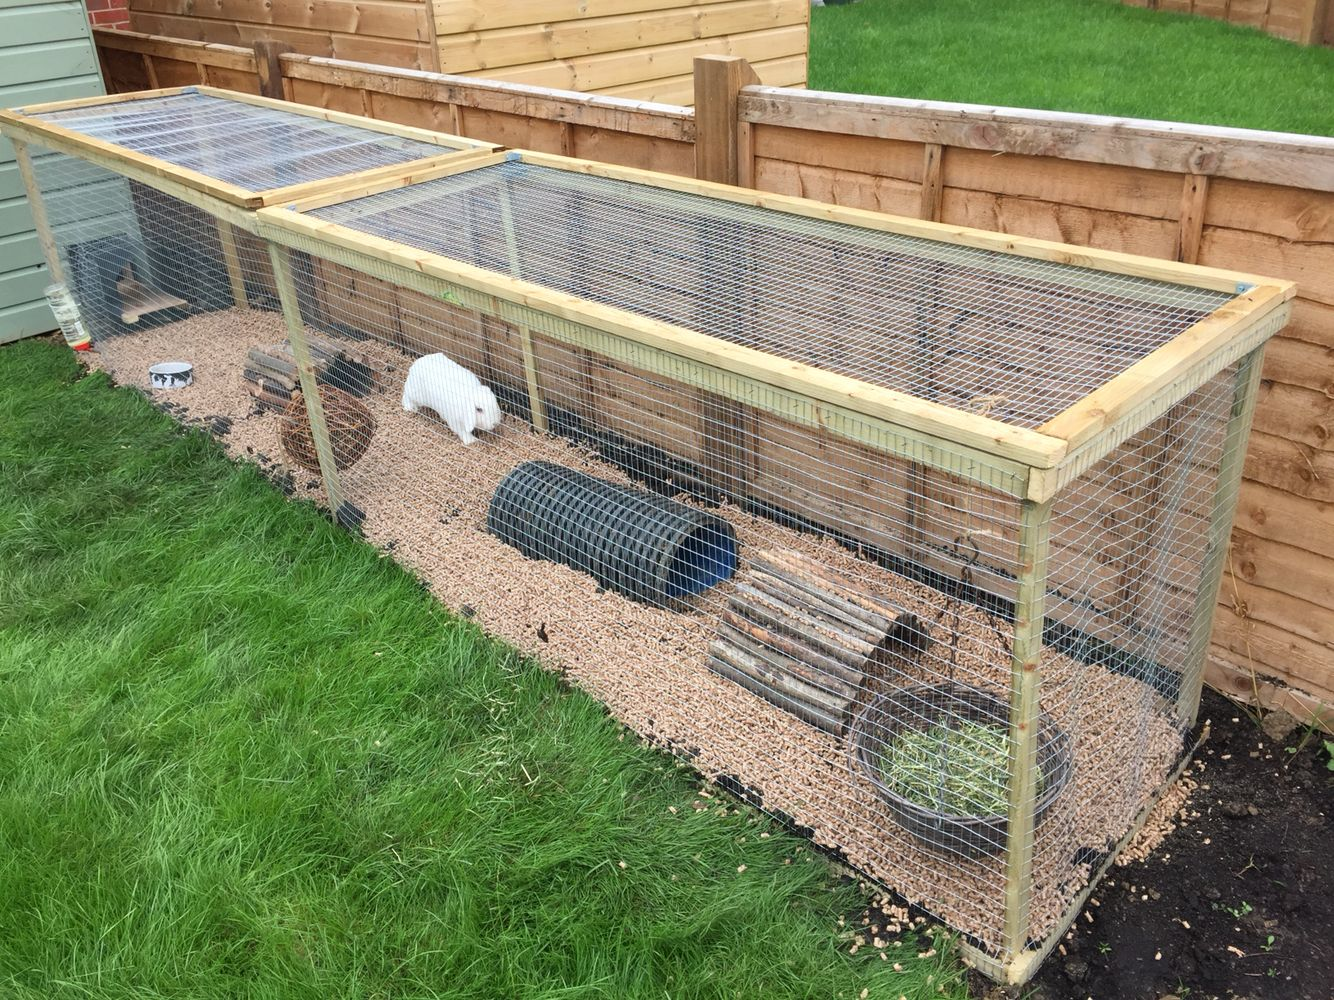 Diy Cage For Rabbit Do It Yourself Wood Projects Diy Rabbit Hutch Indoor